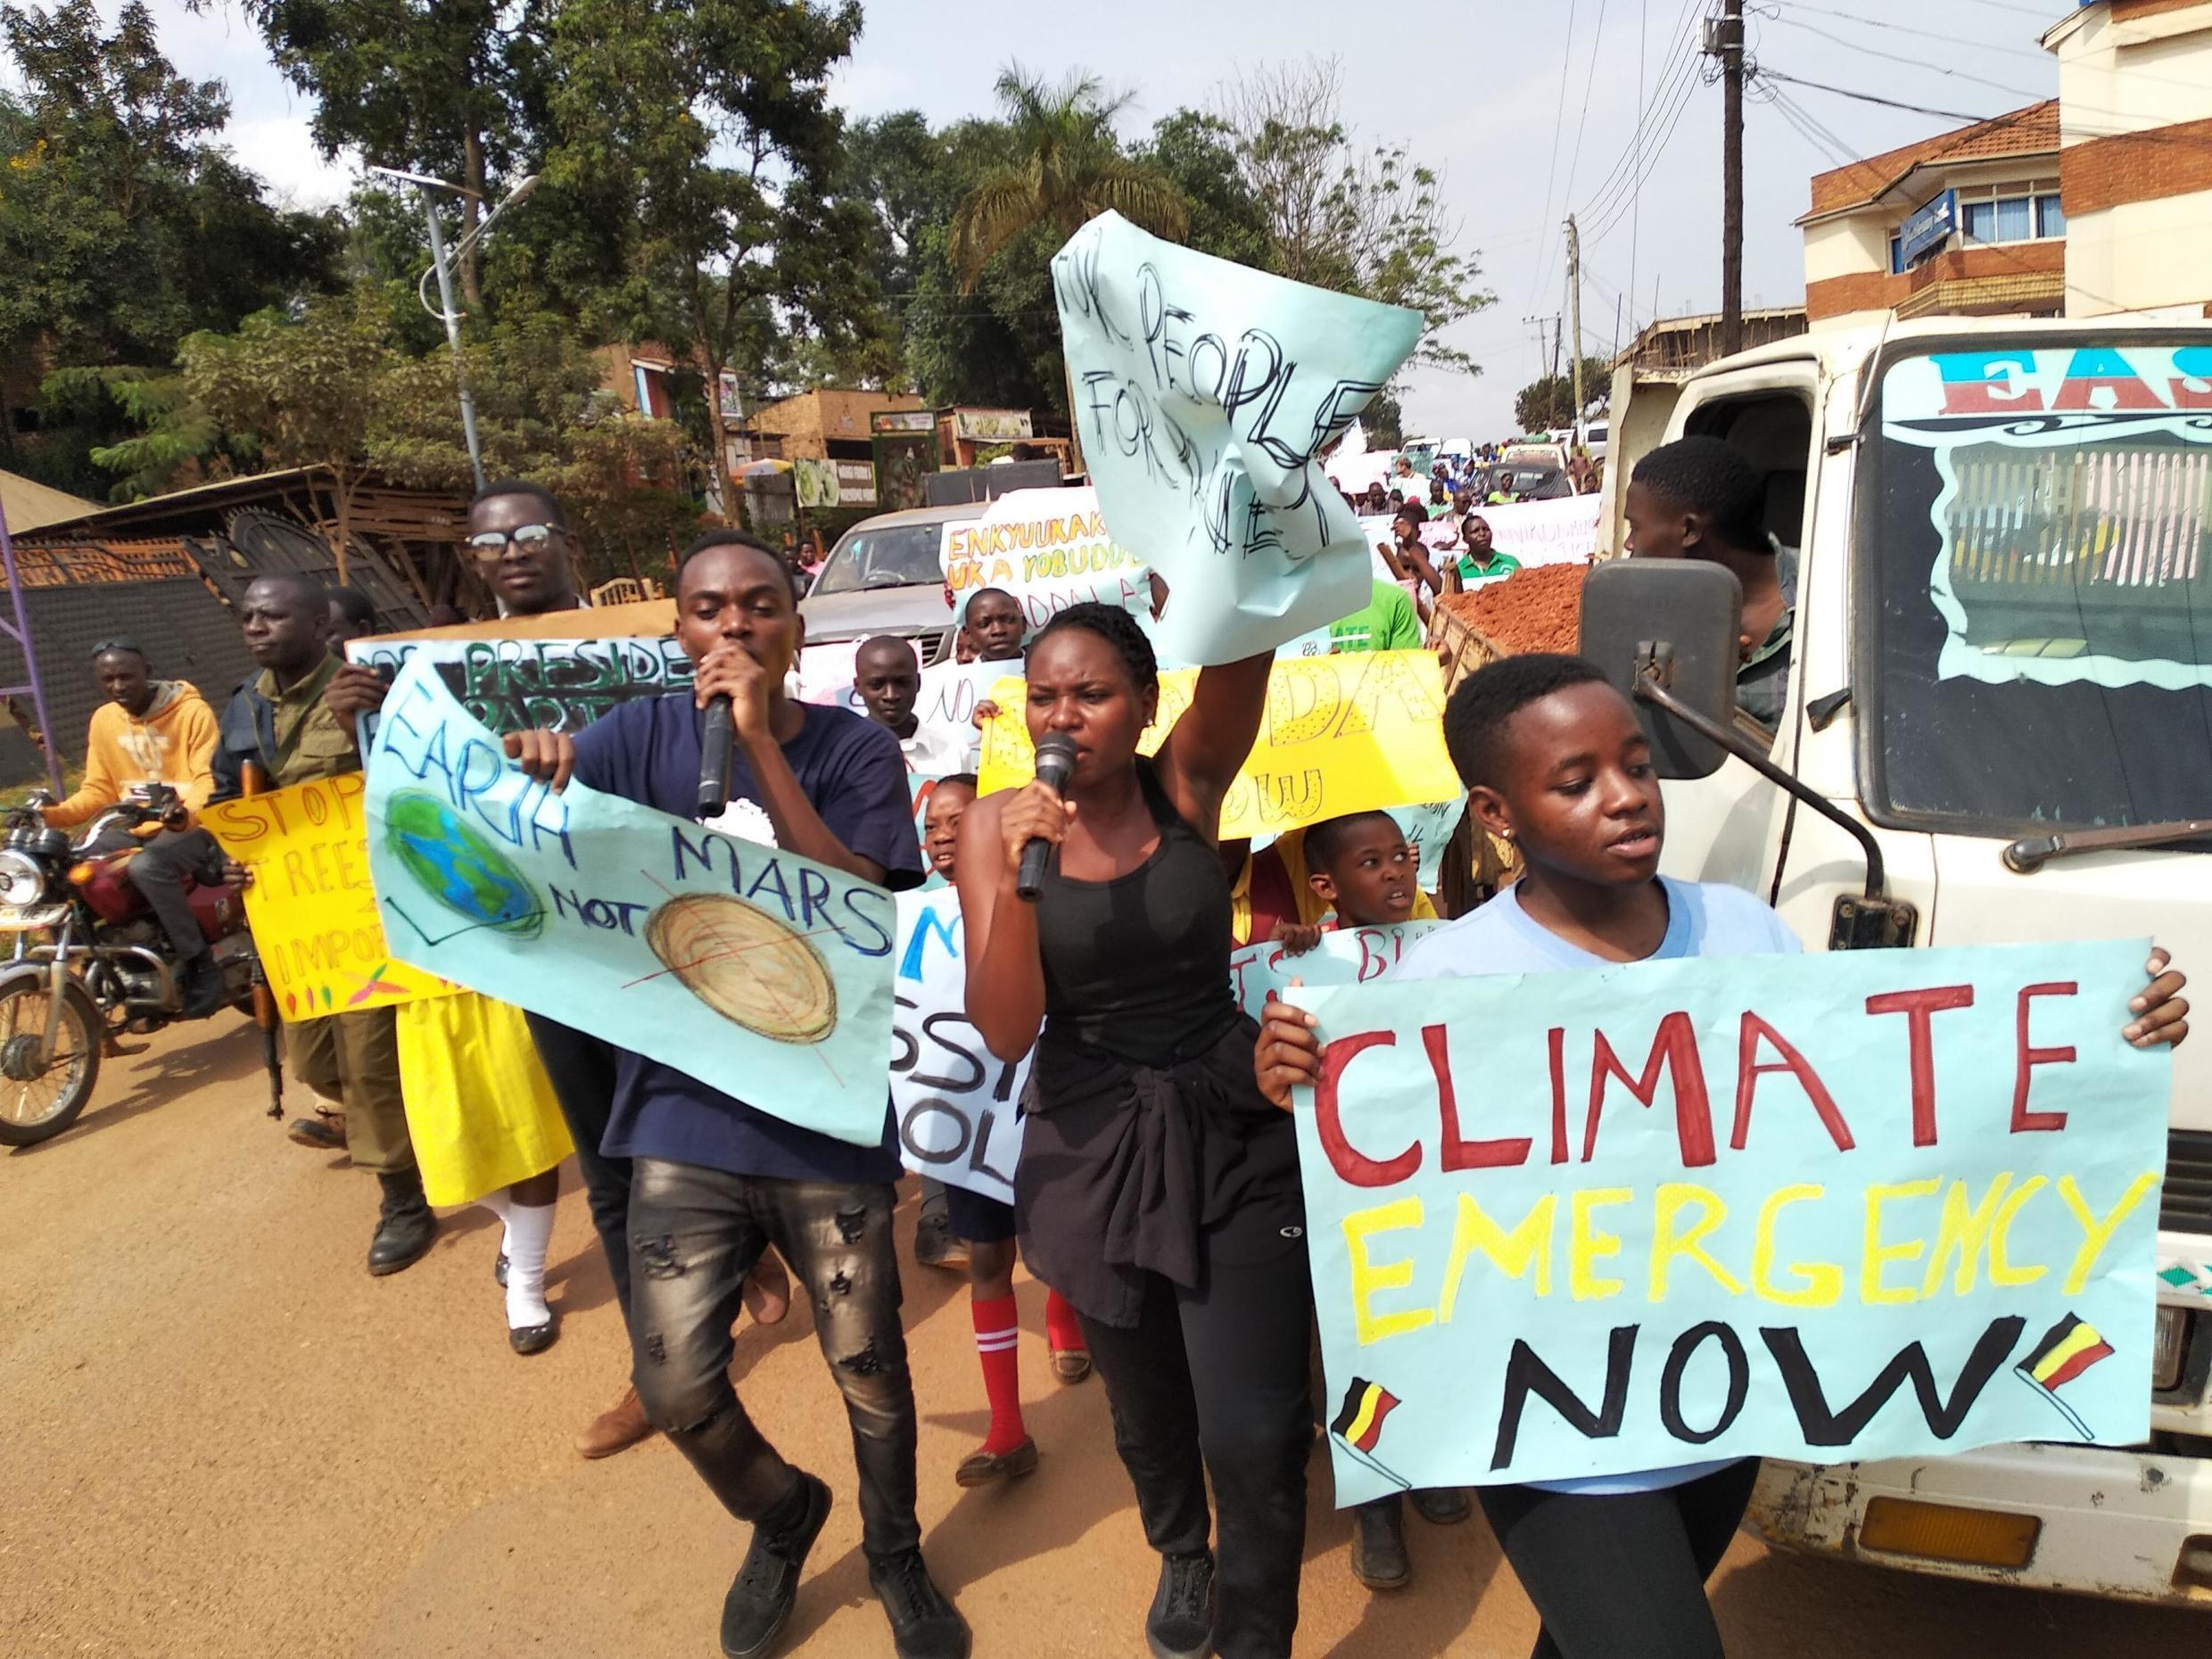 Hilda Flavia Nakabuye (in centre) demonstrates with other climate strikers from the Fridays for Future Uganda movement to call for climate action